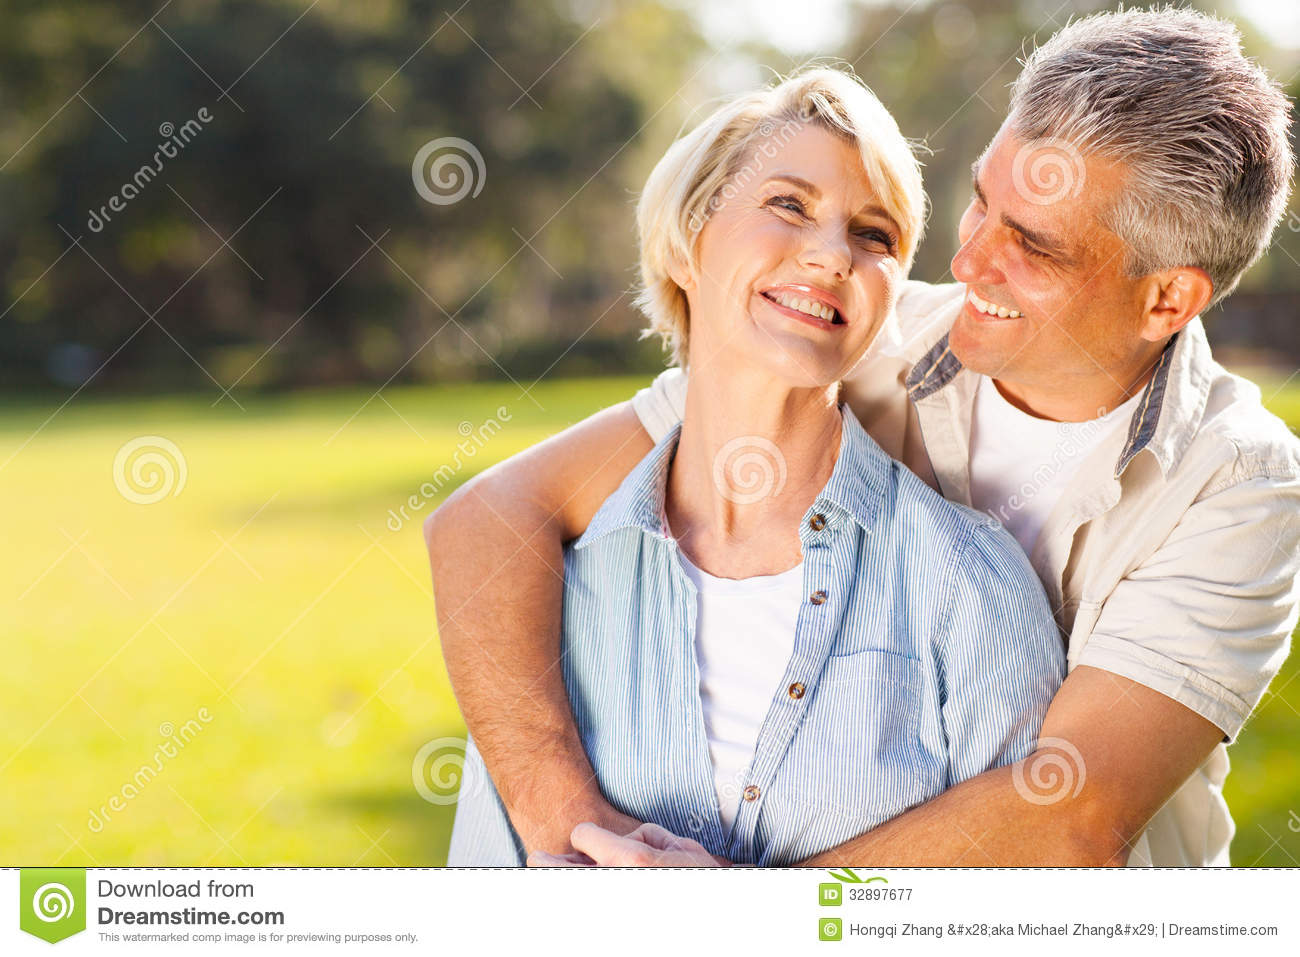 Couple Embracing Outdoors Royalty Free Stock Photography